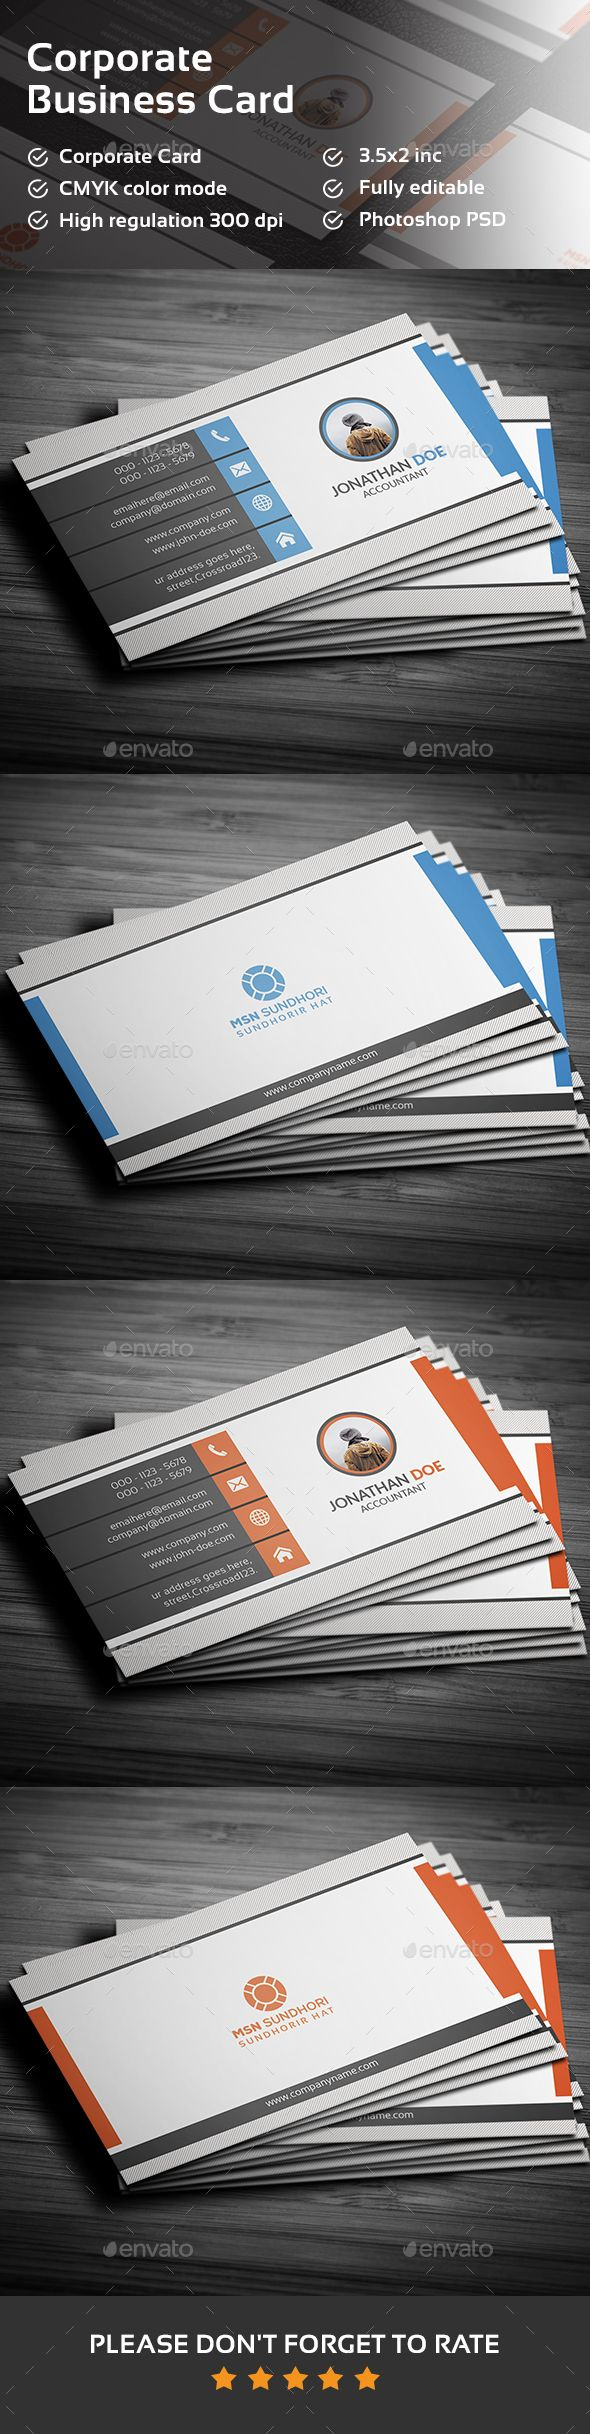 Corporate Business Card — Photoshop PSD #green #professional • Available here → https://graphicriver.net/item/corporate-business-card/15677082?ref=pxcr